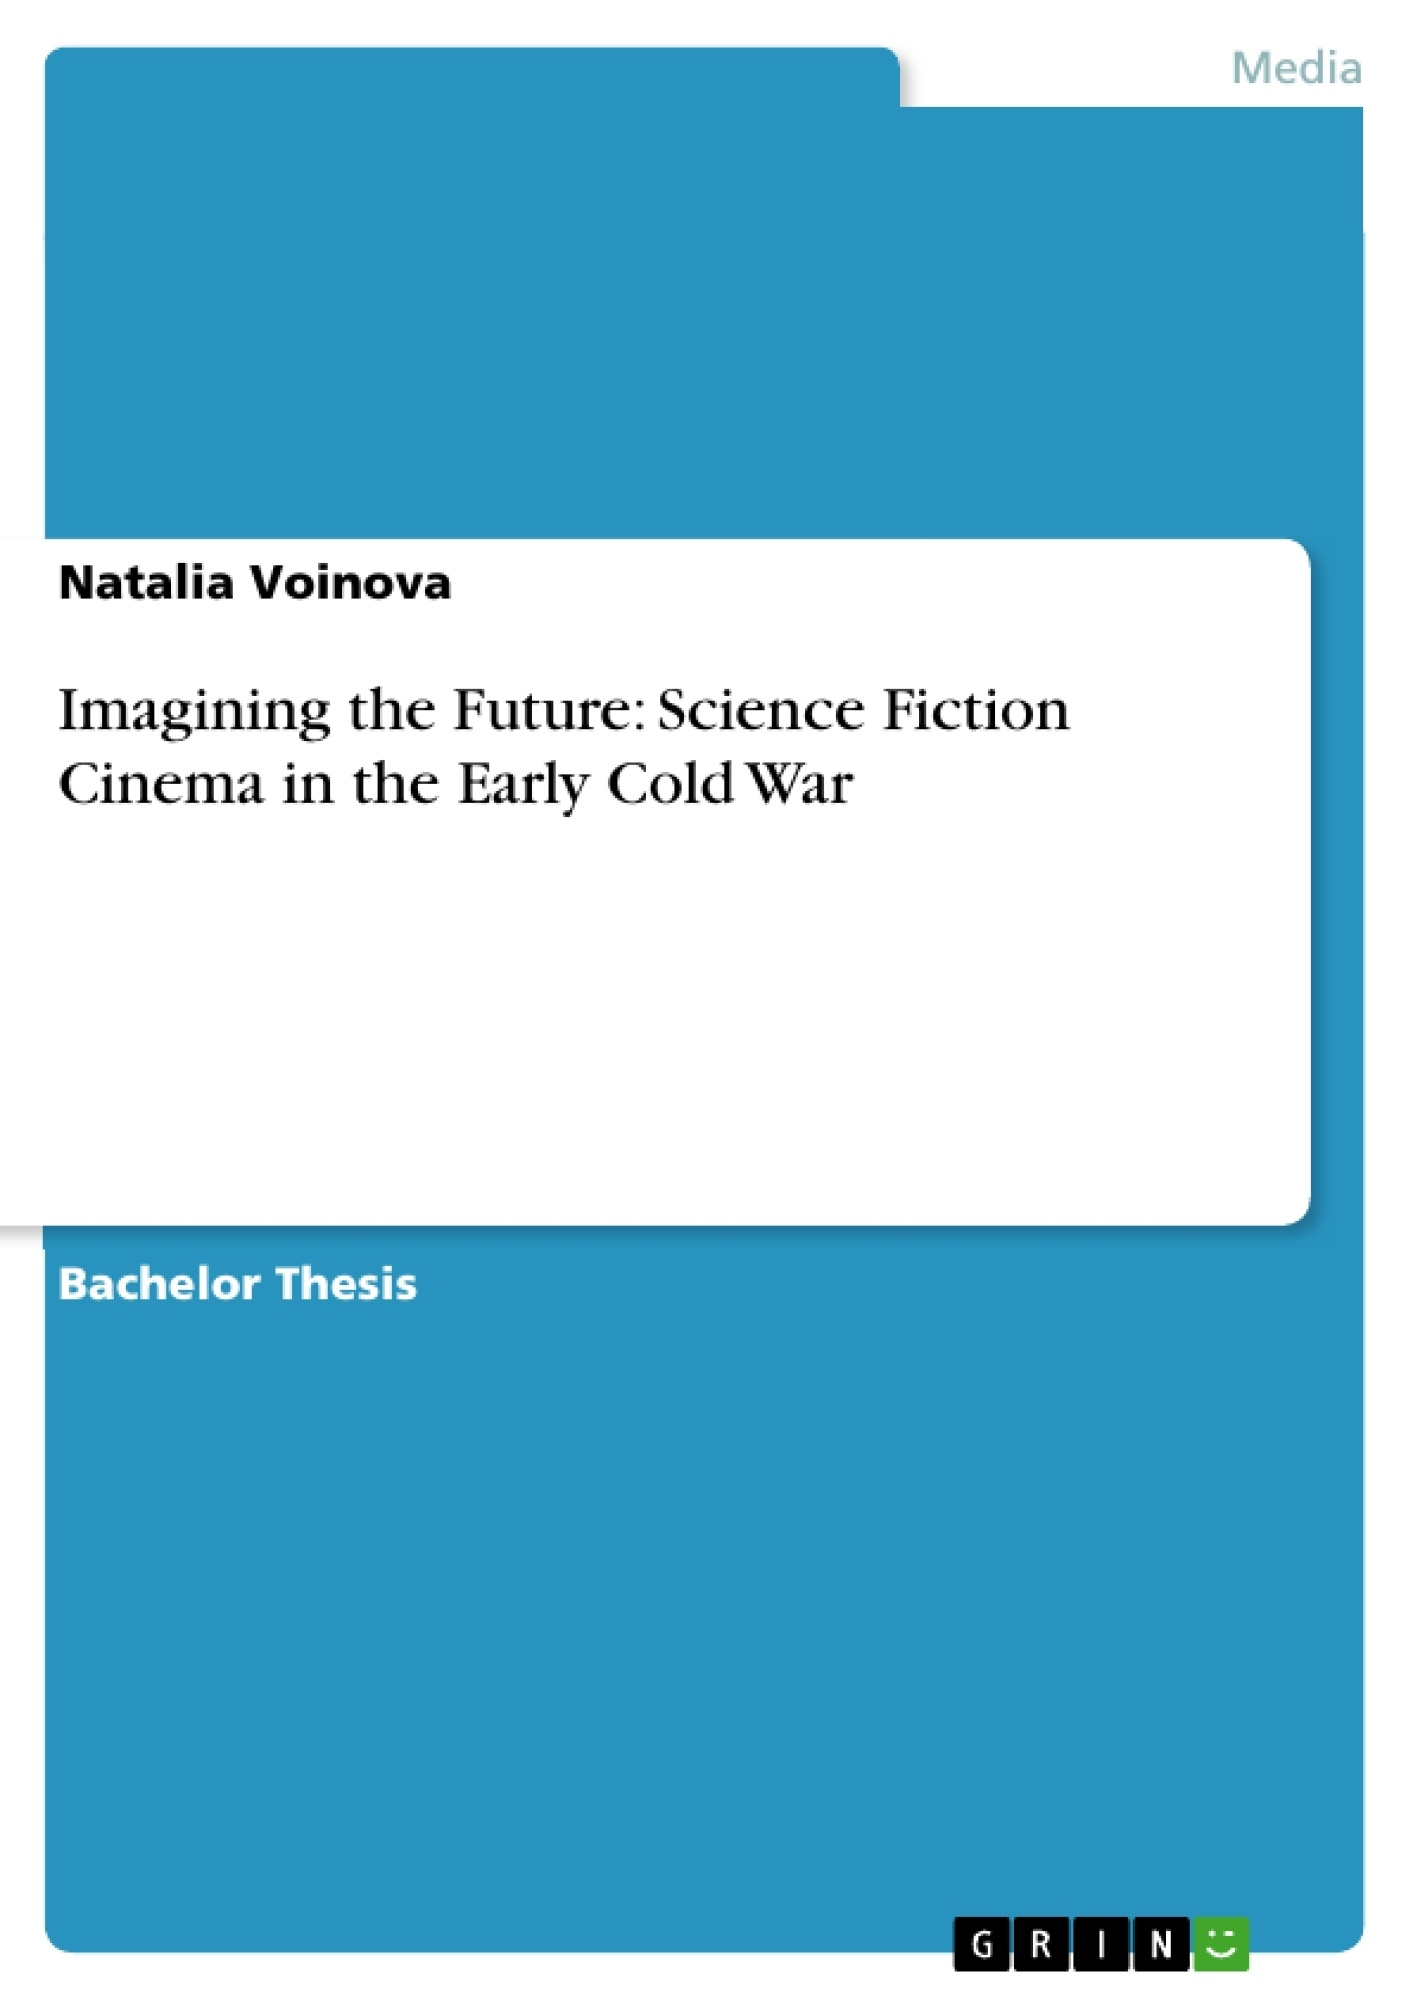 Title: Imagining the Future: Science Fiction Cinema in the Early Cold War